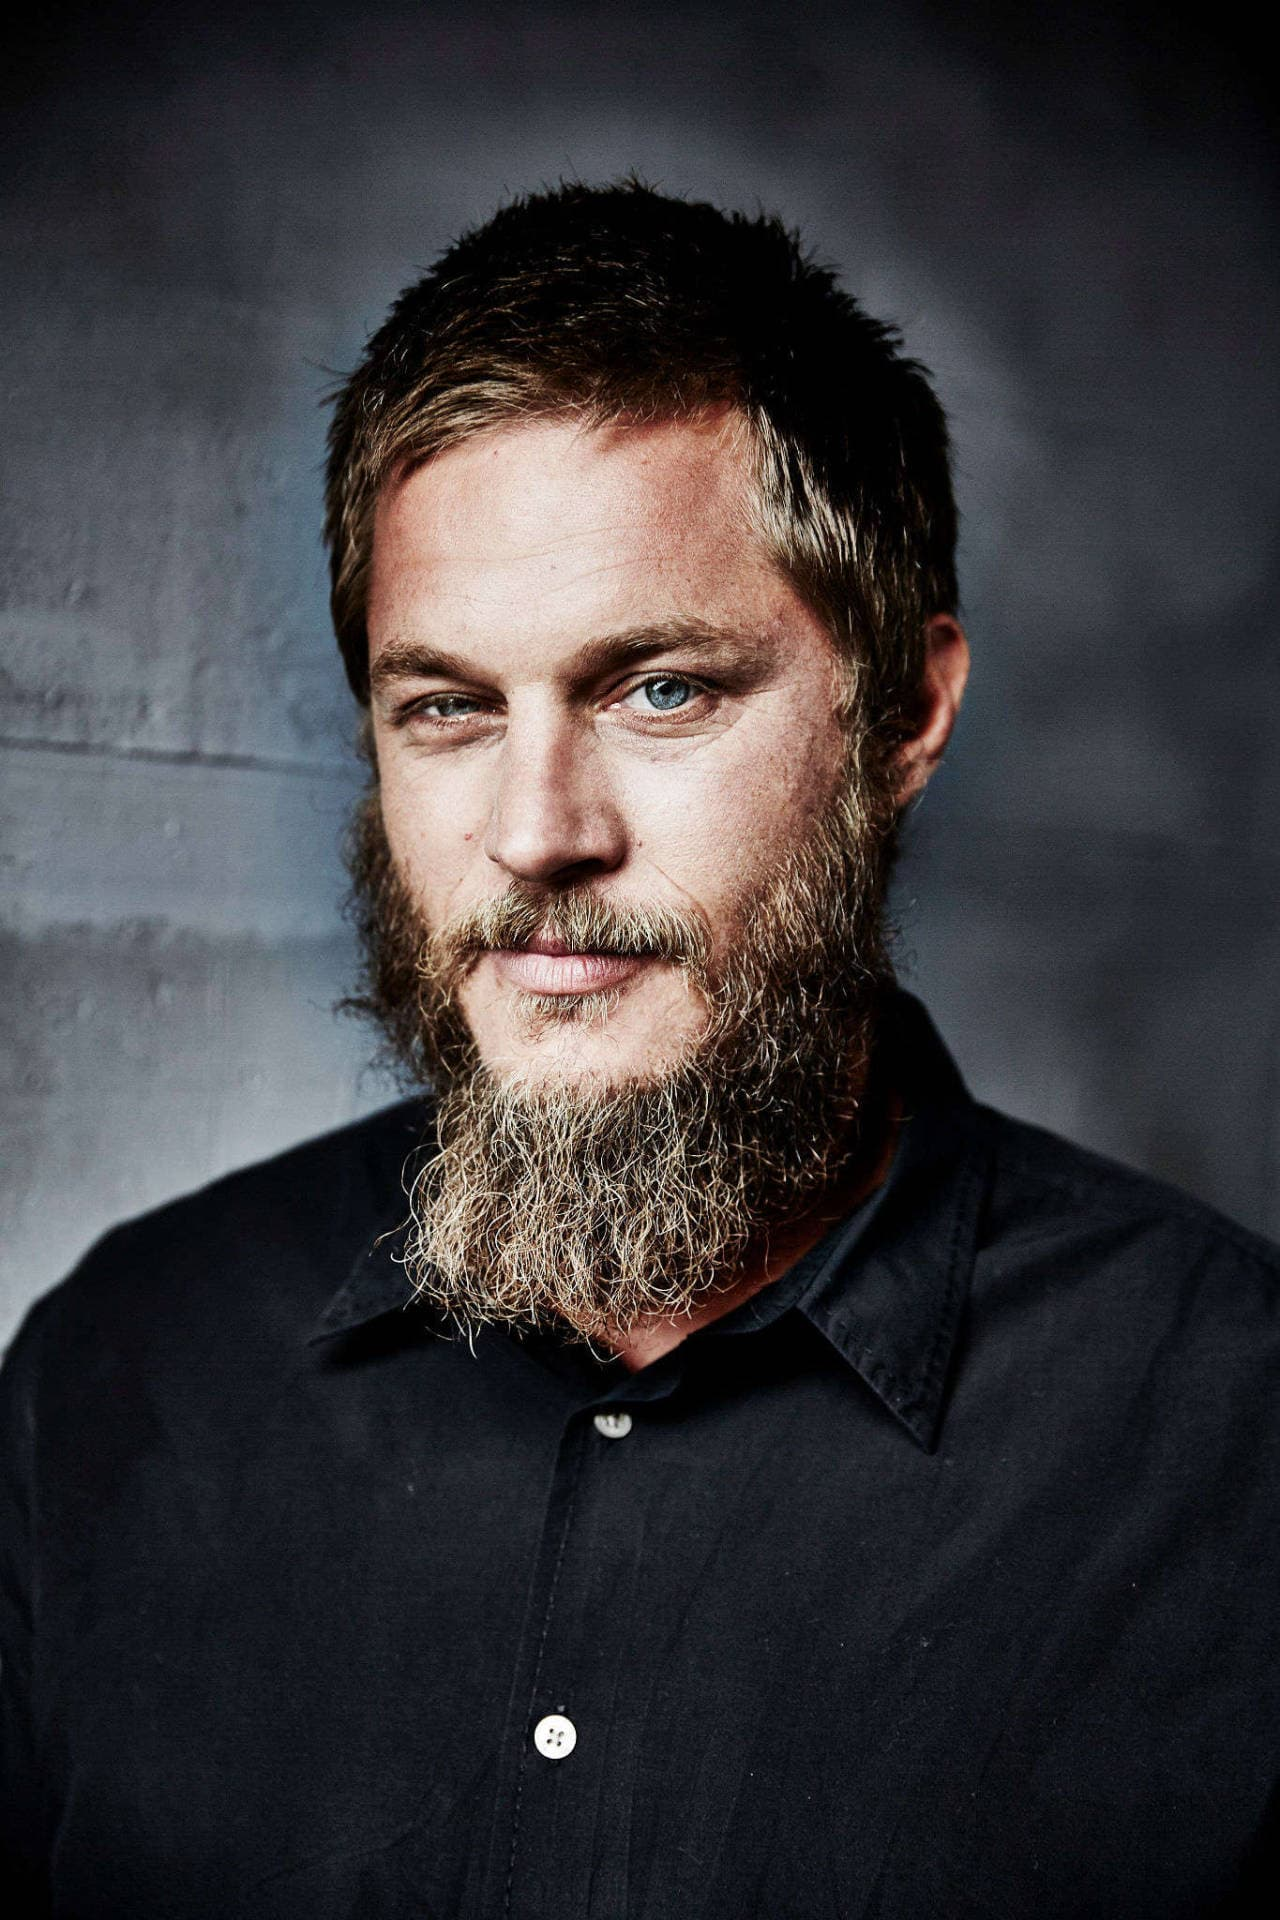 vikings beard photo - 1